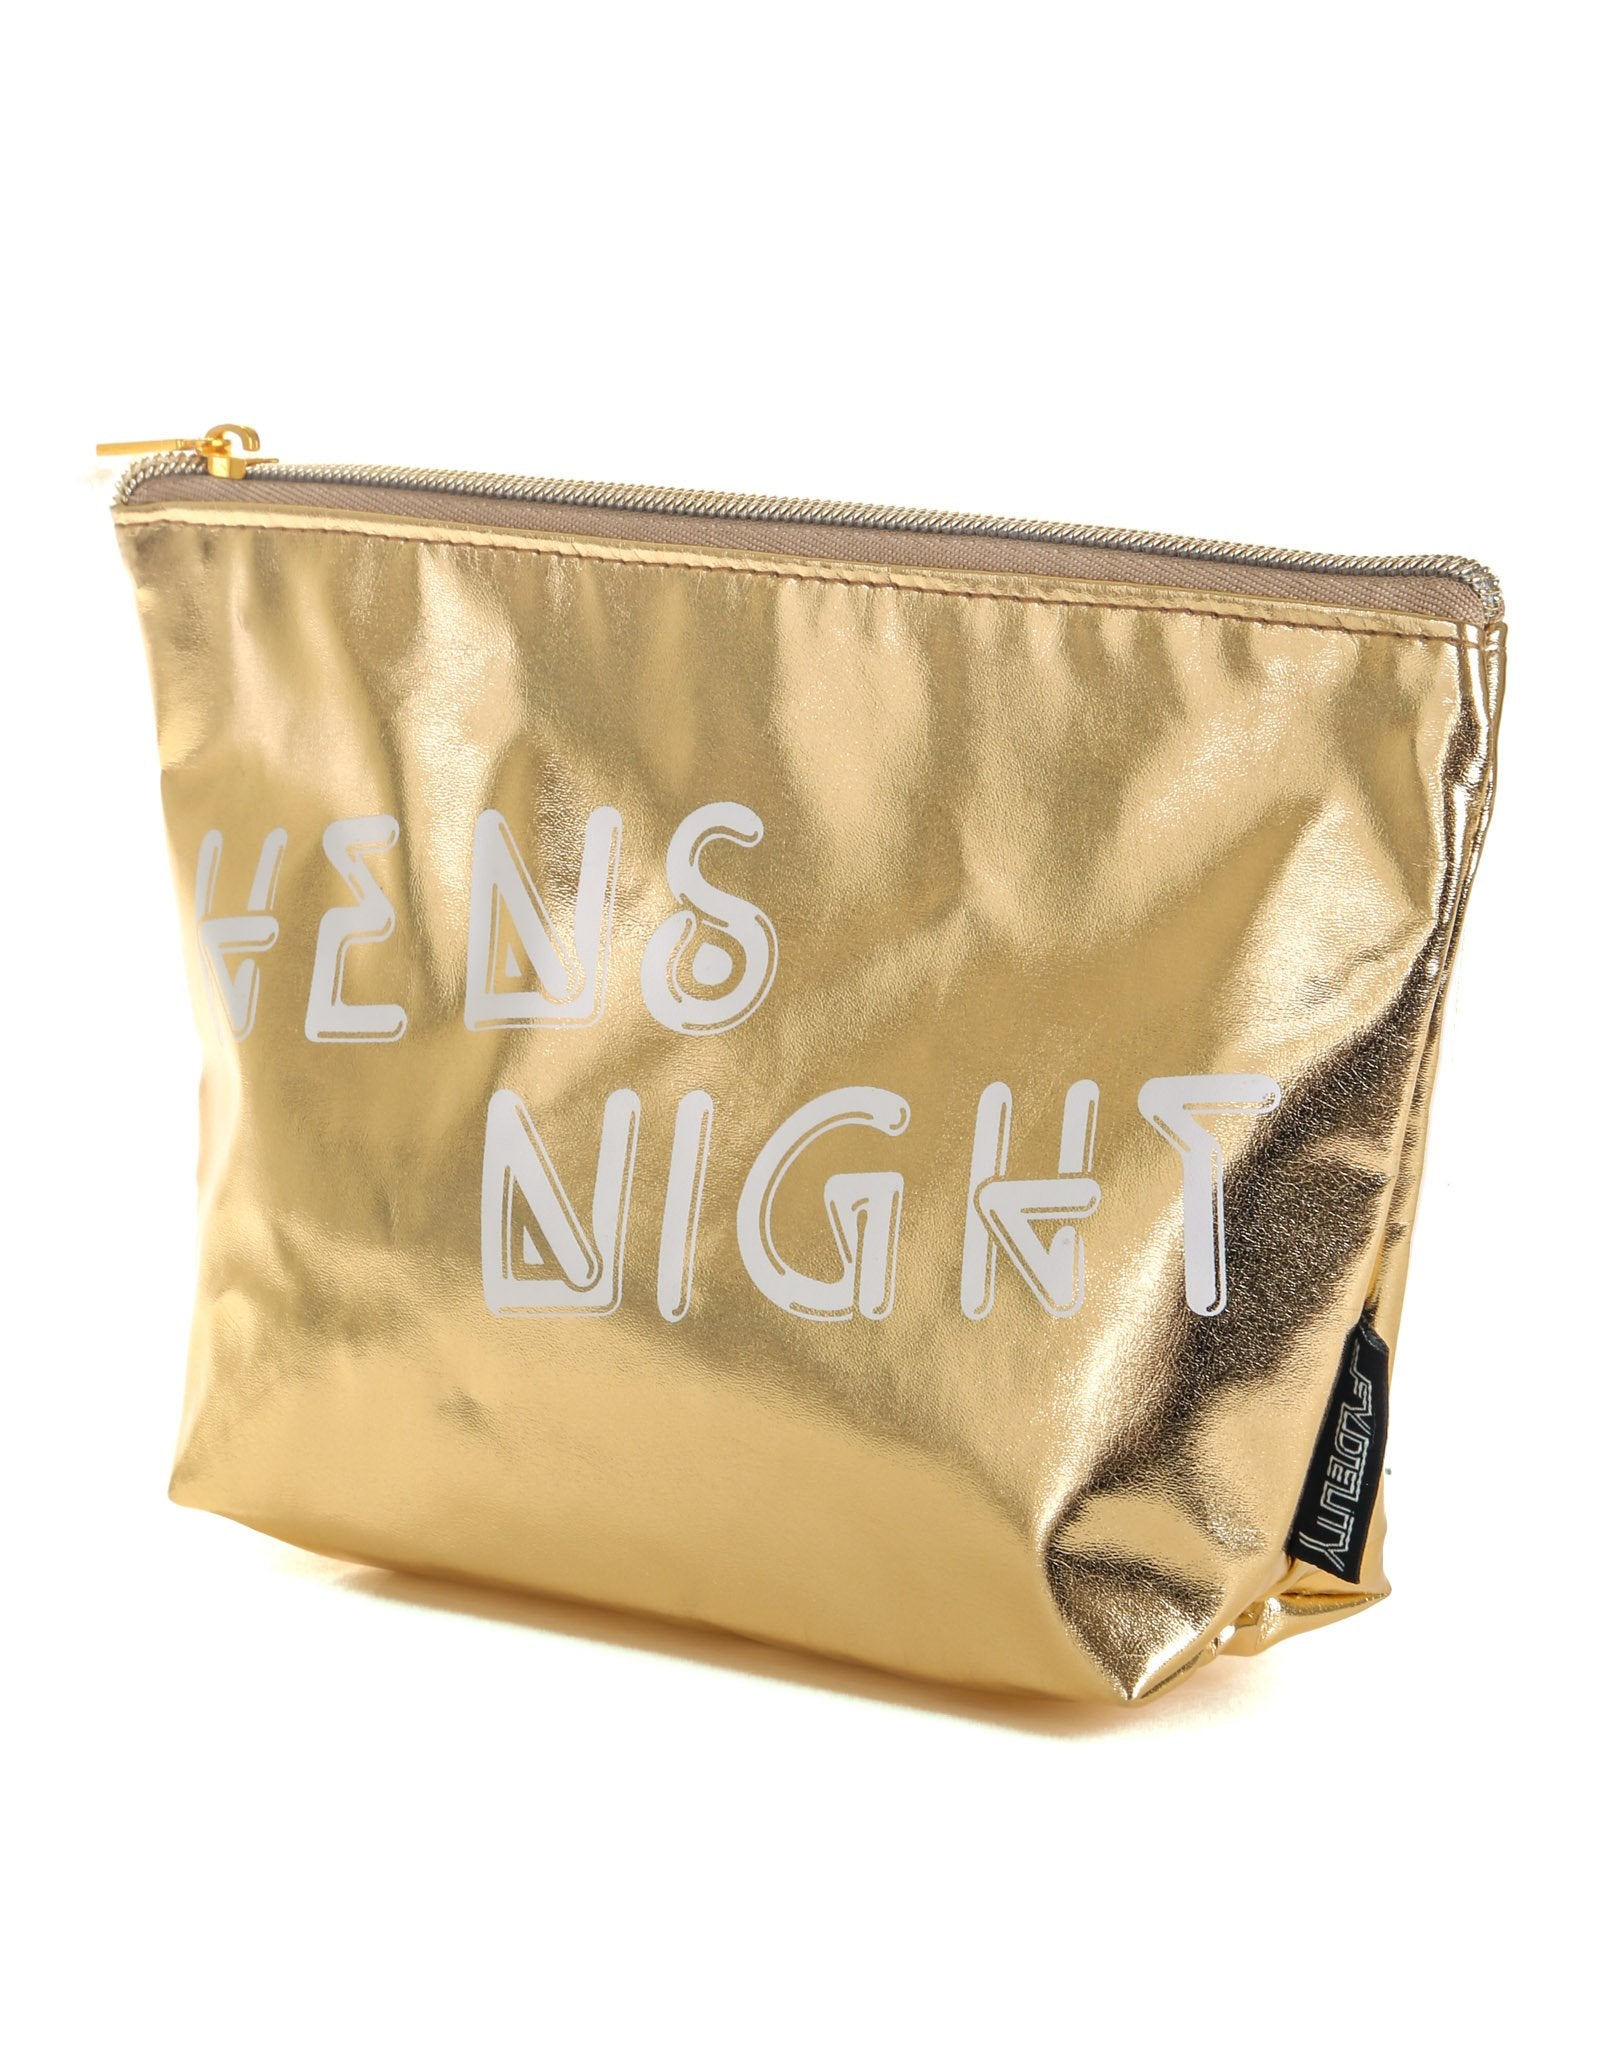 60019: FYDELITY- Zip Pouch: HENS NIGHT Metallic Gold